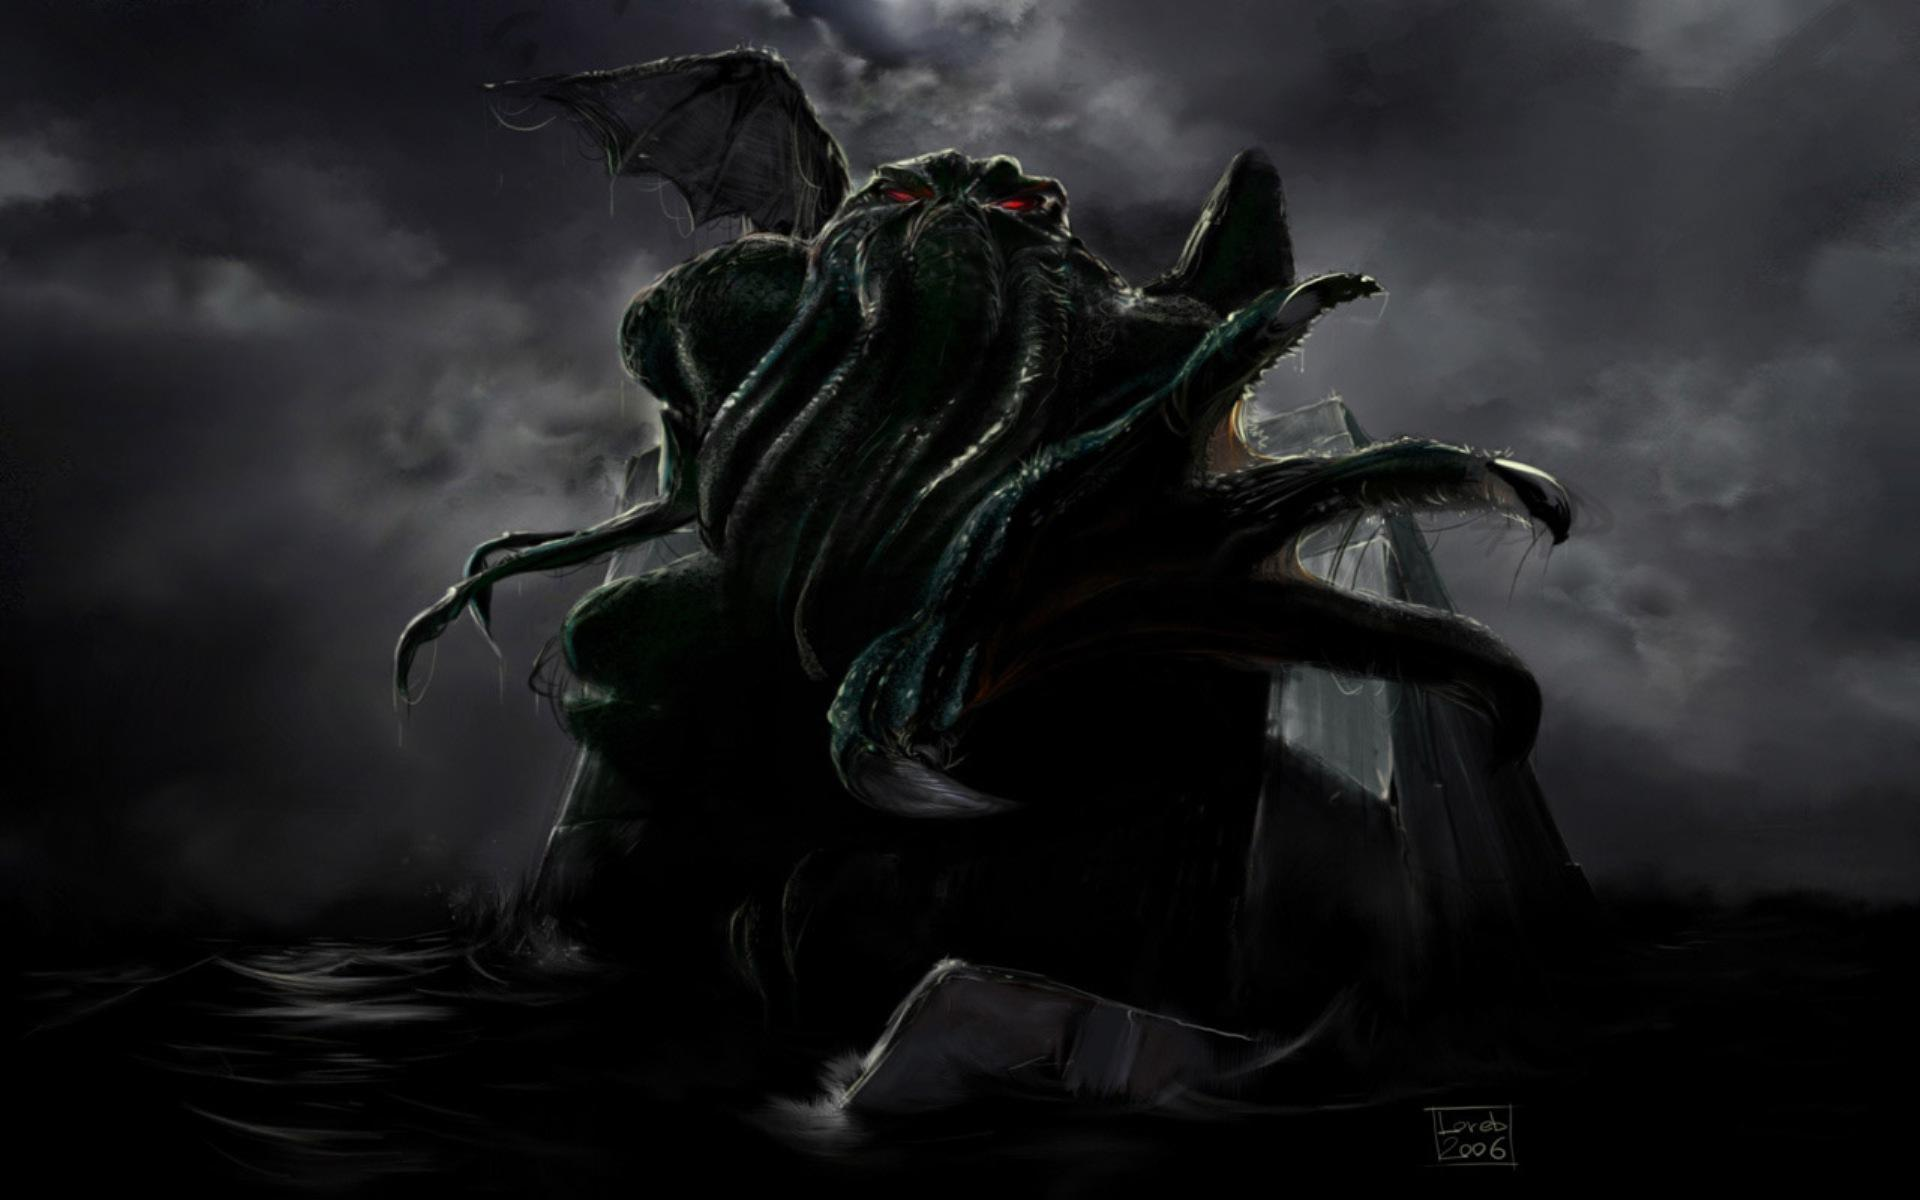 cthulhu wallpaper large hd wallpaper database